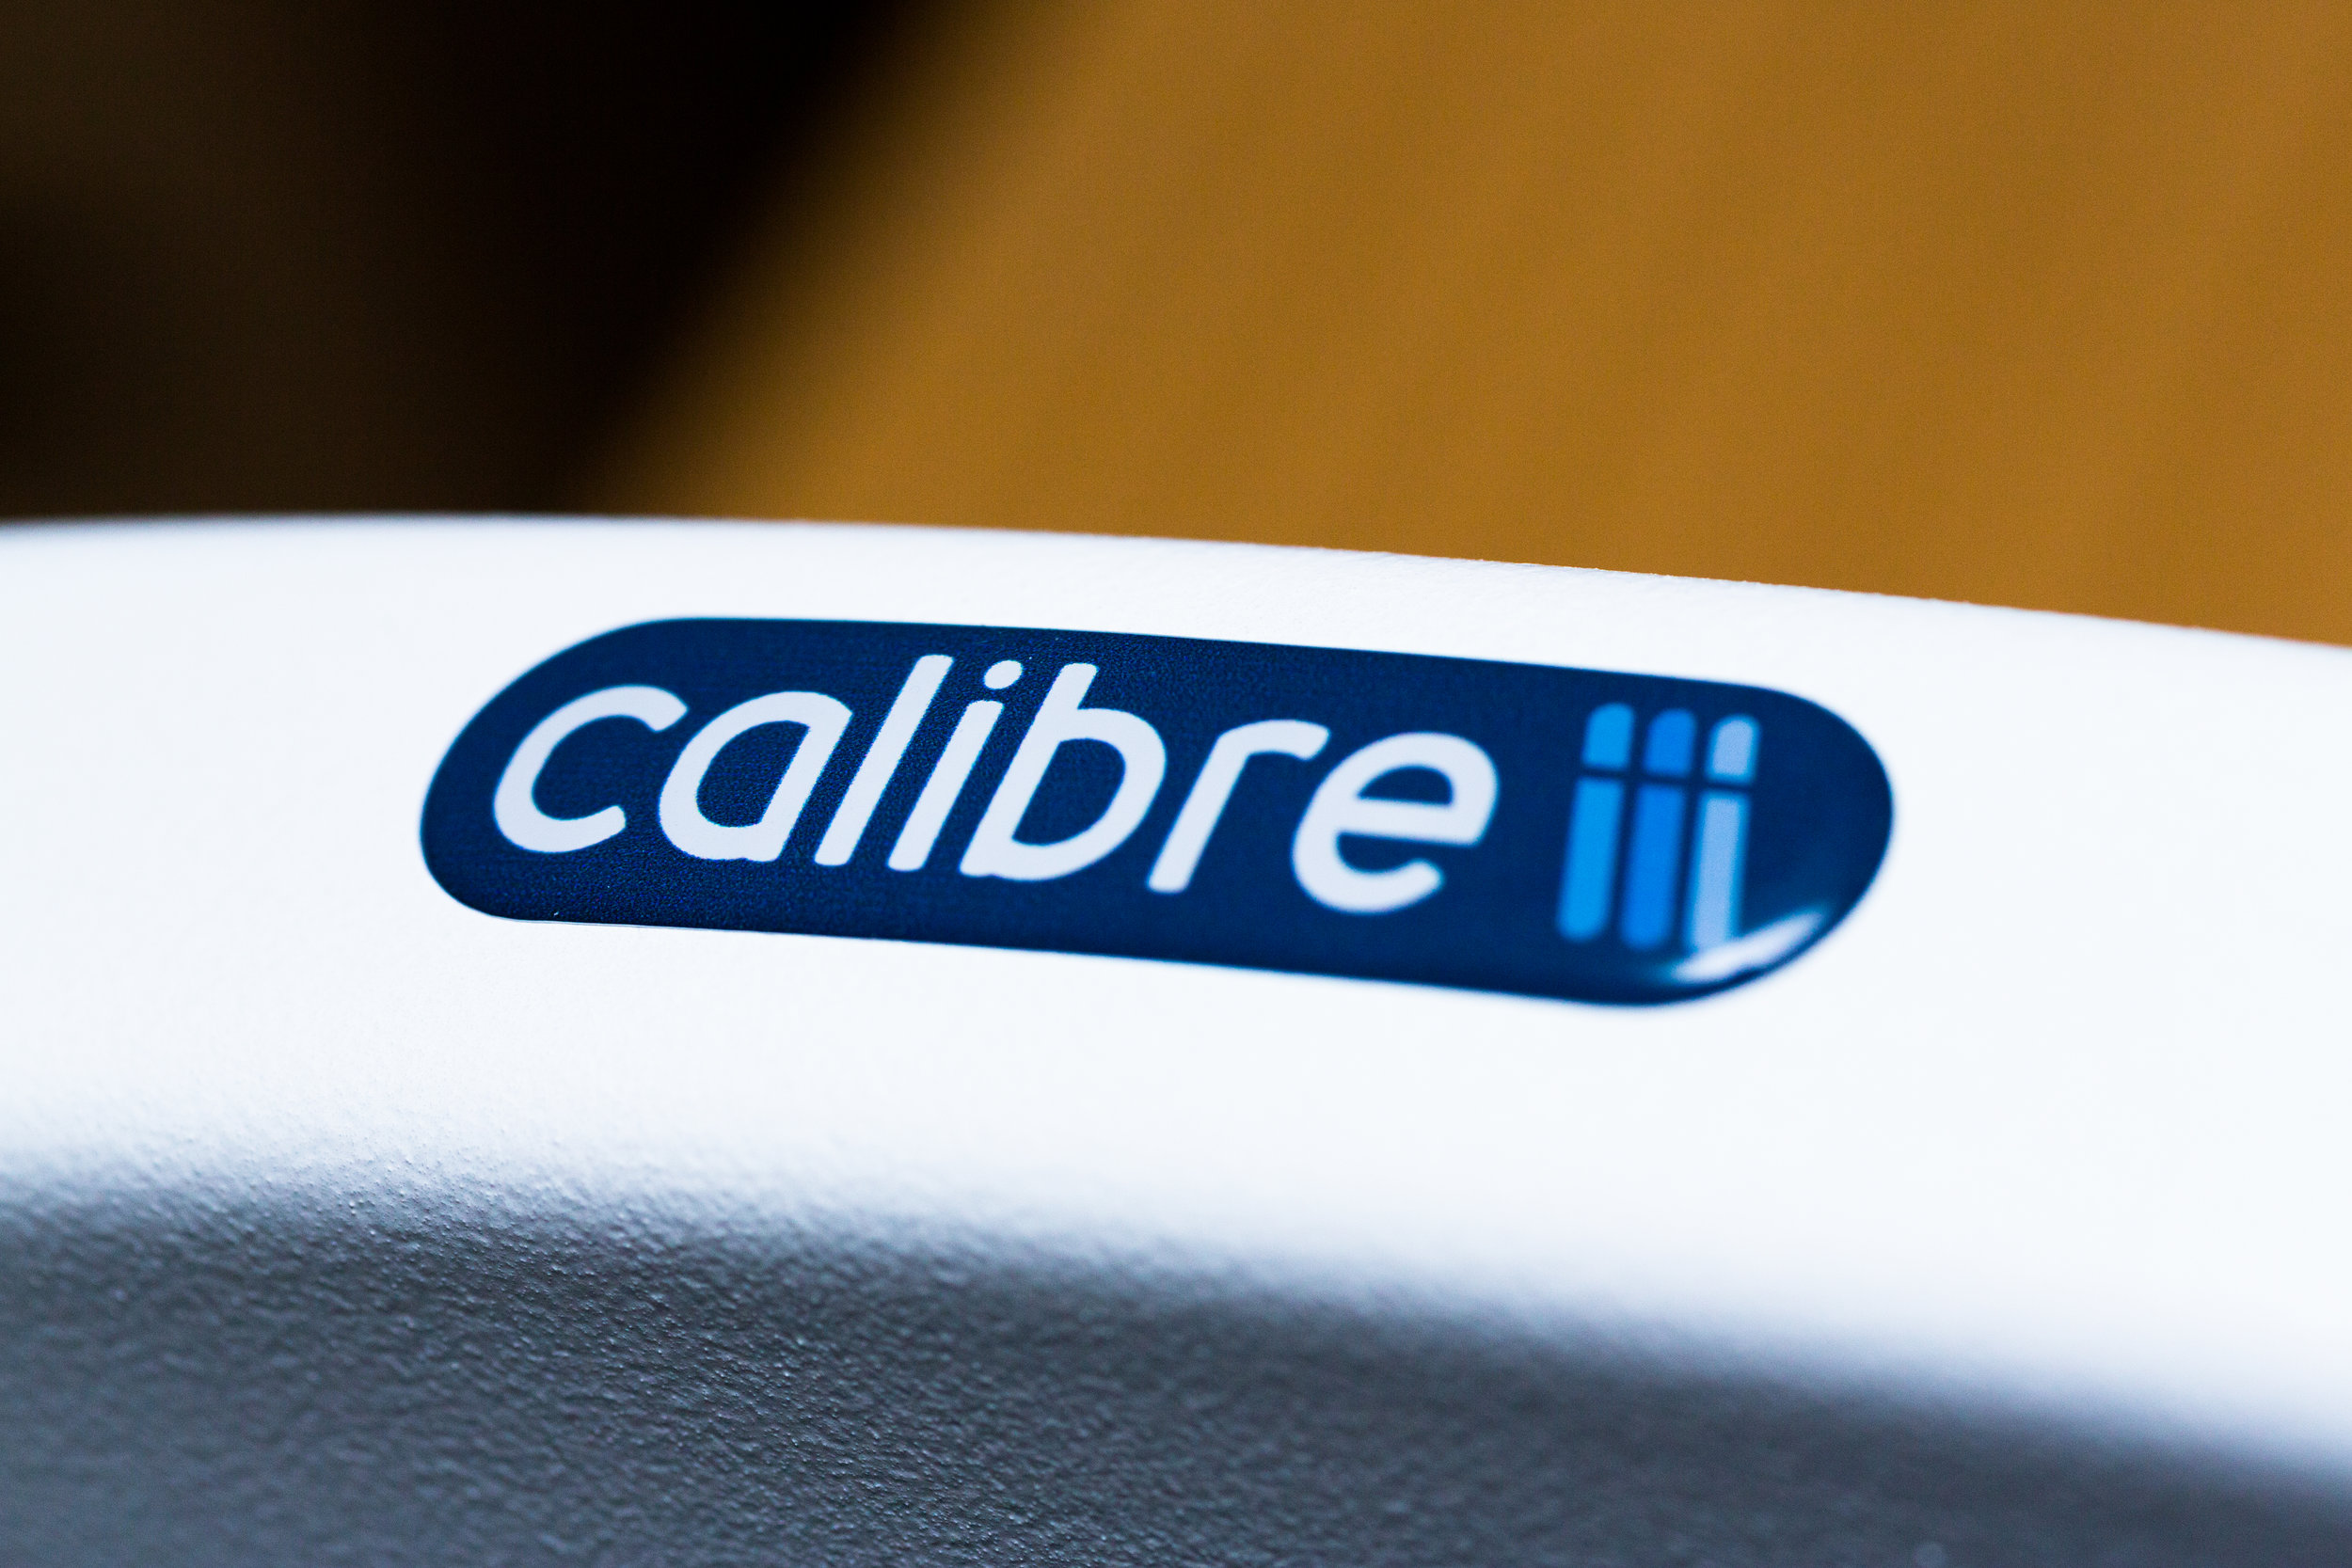 Company Story - We supply a wide range of testing equipment for the food and drink industry, with a knowledgeable customer support team. We pride ourselves on having the ability to react to our customer's requirements while being large enough to provide key support to some of the world's largest companies. Read more about Calibre -->